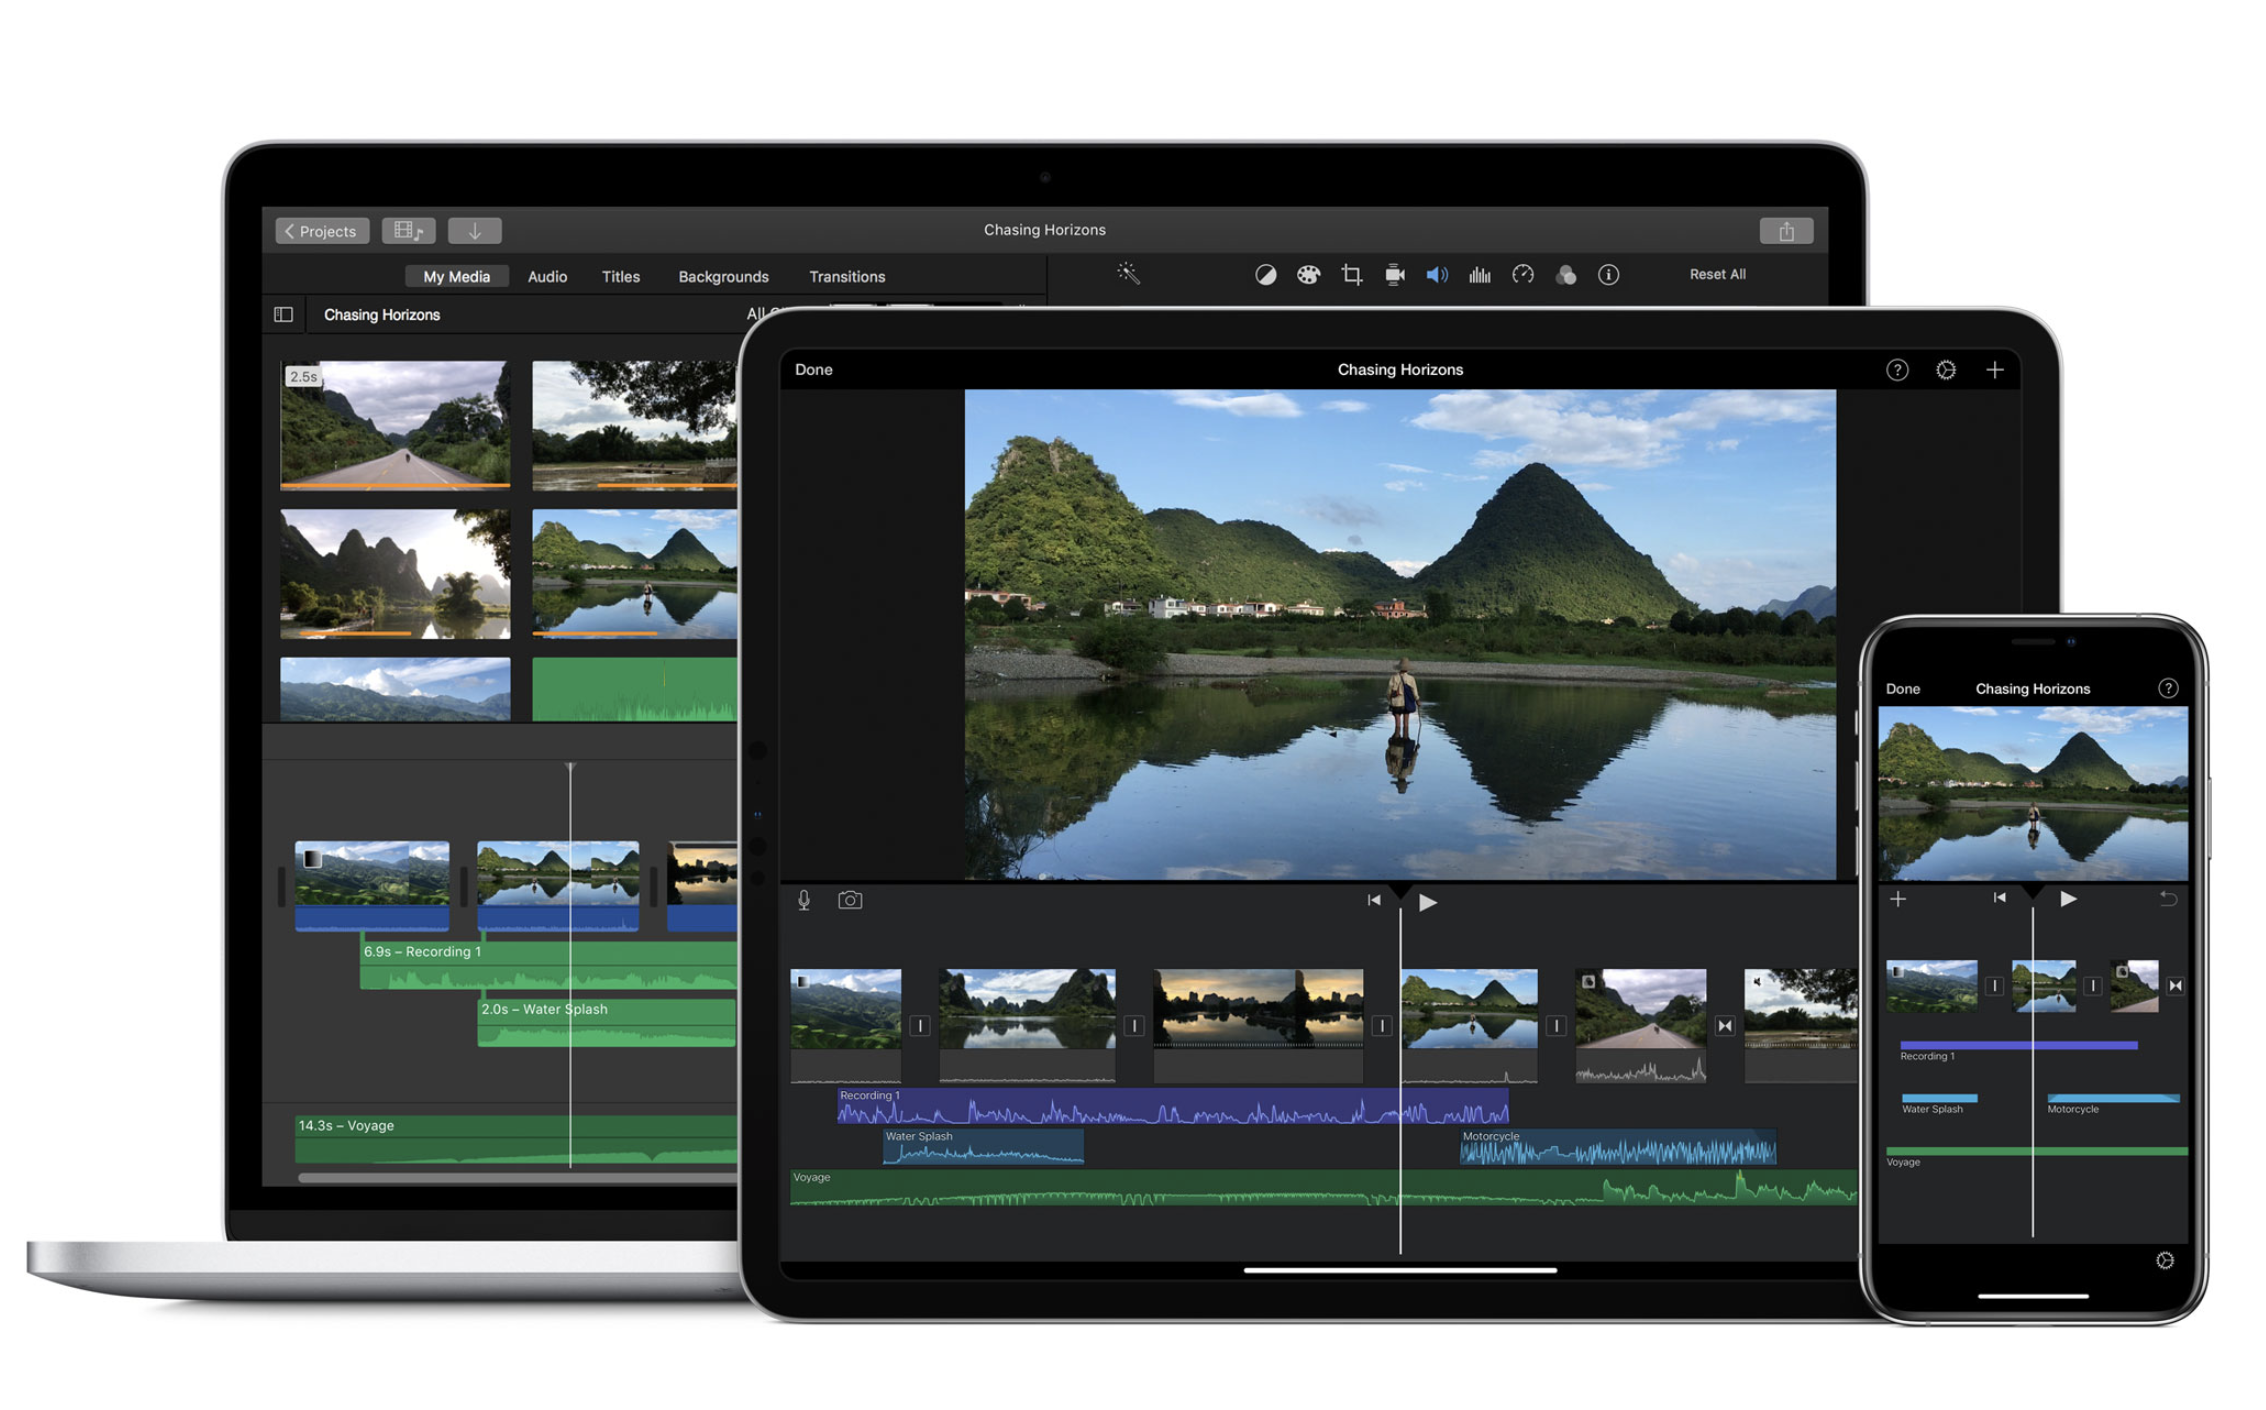 Top 10 tips for mastering Apple's Photo App. 6